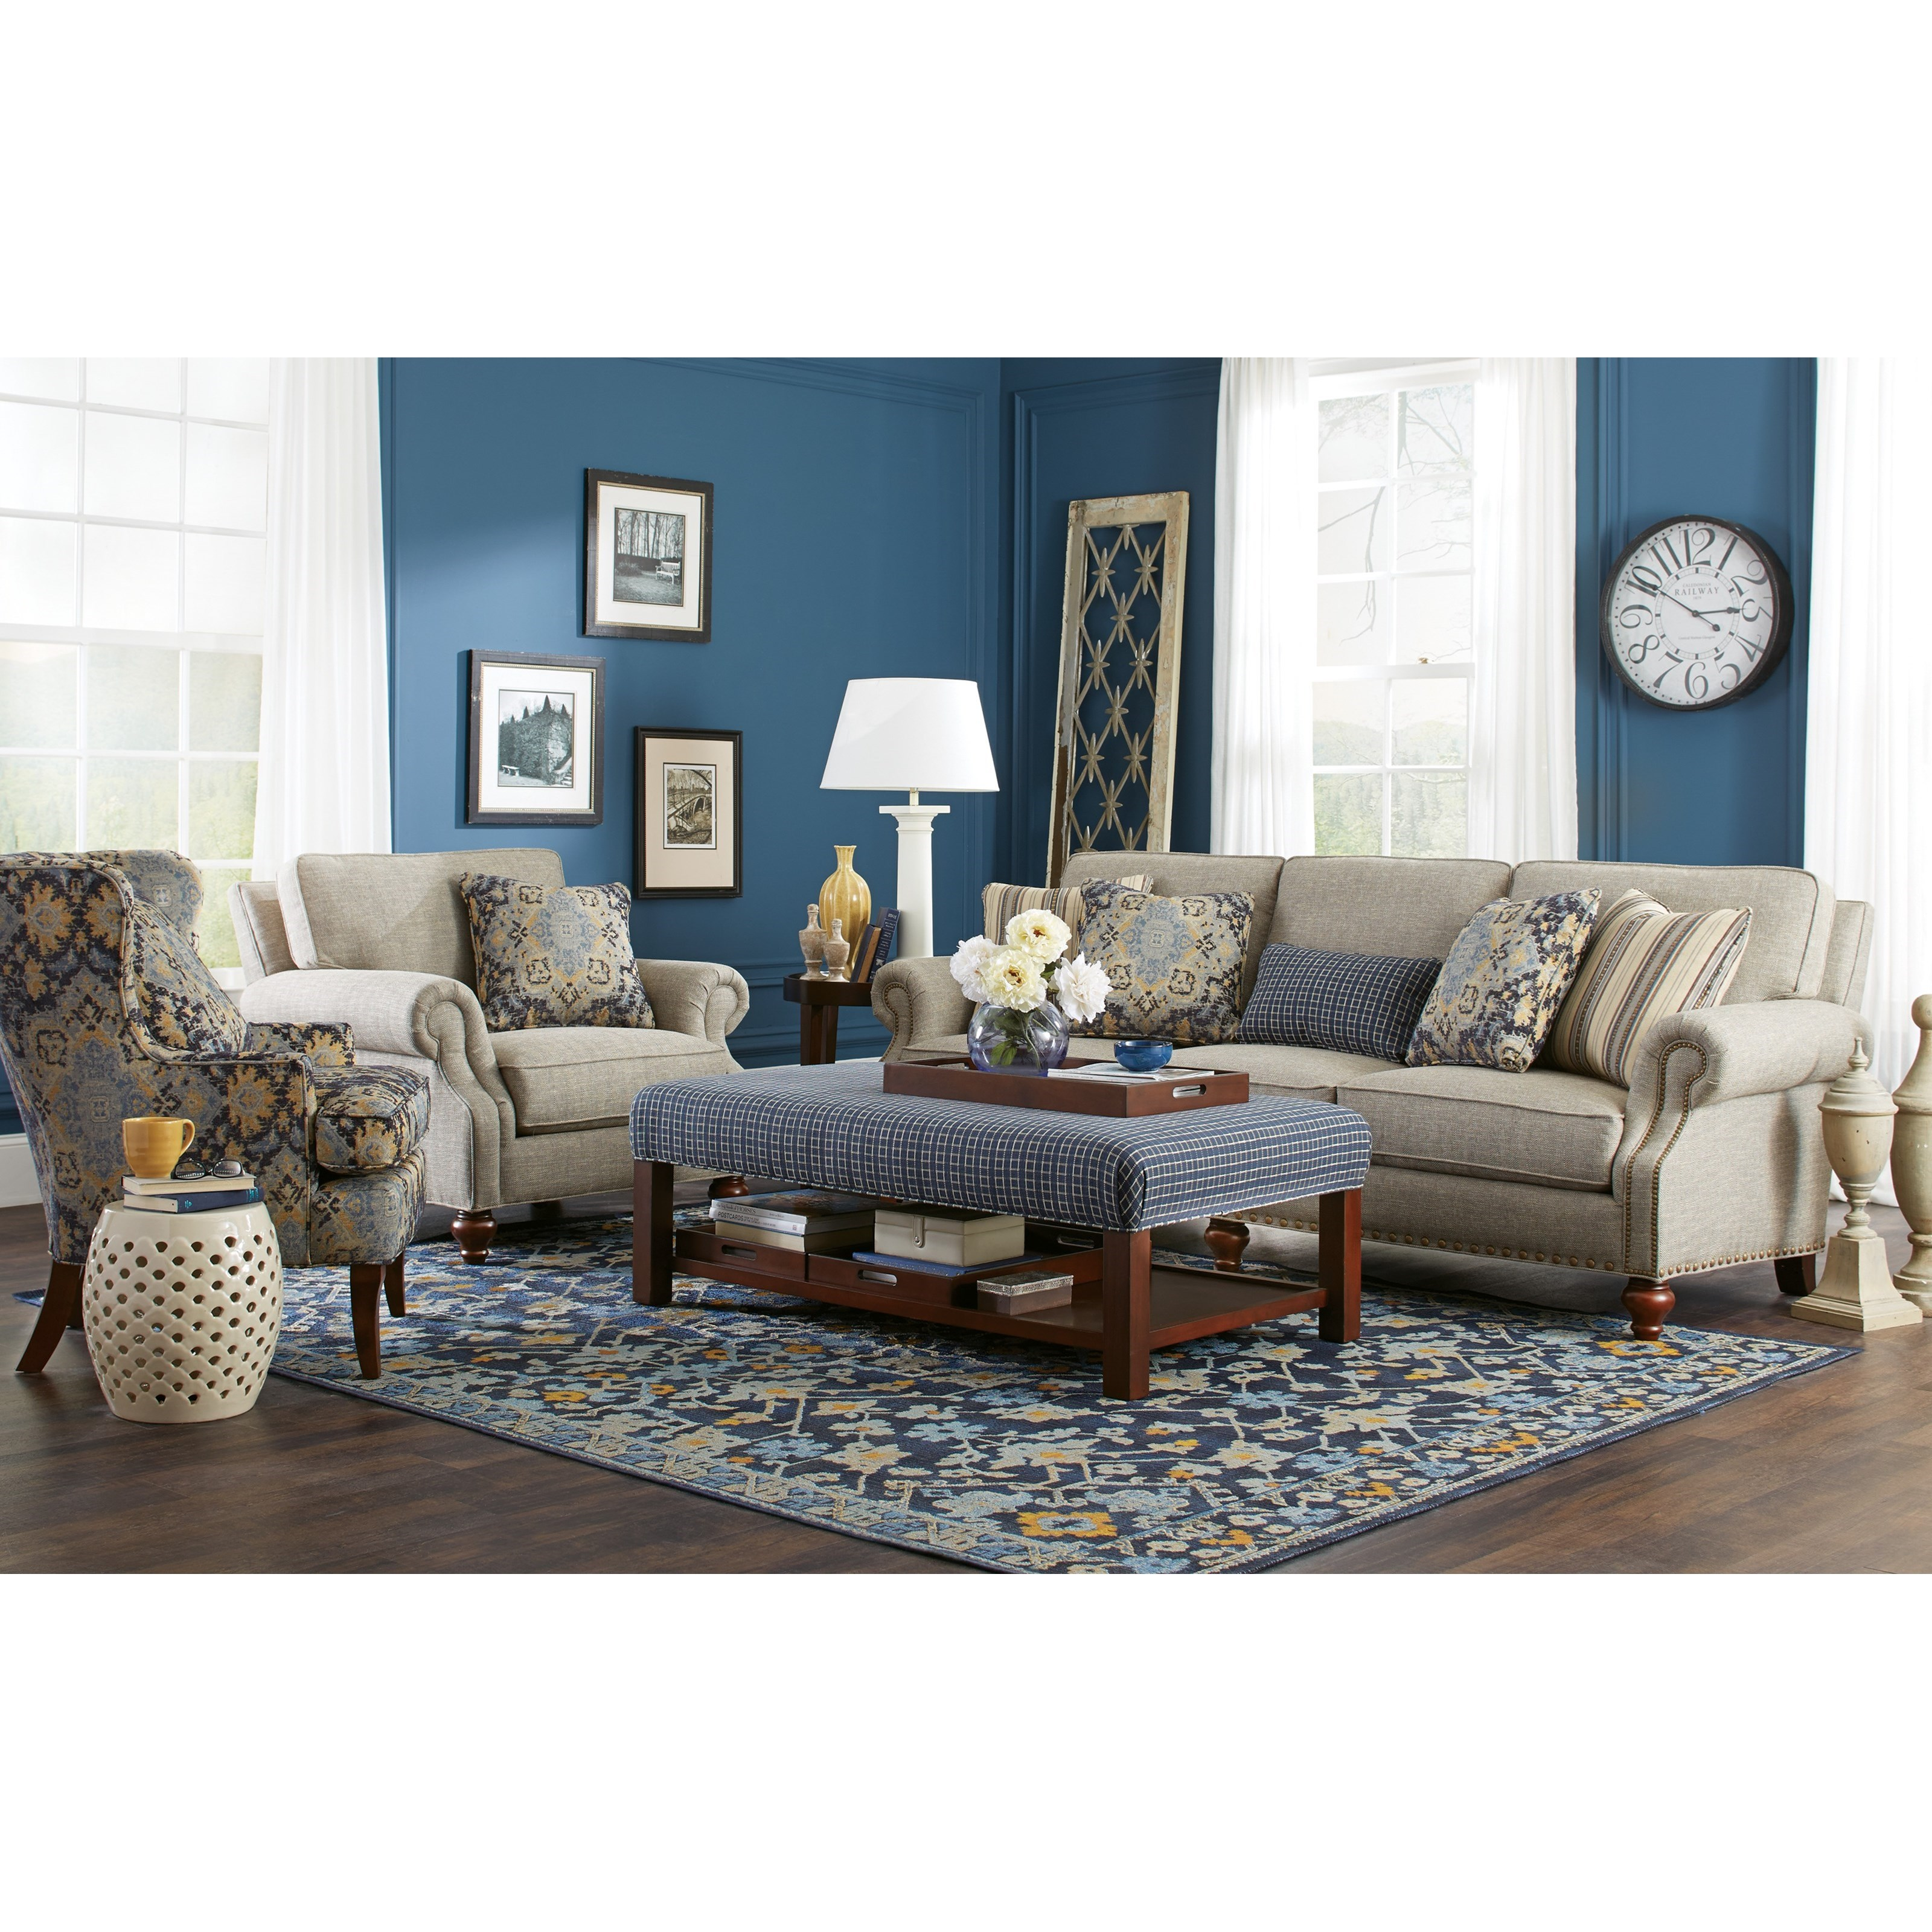 7623 Living Room Group by Craftmaster at Baer's Furniture